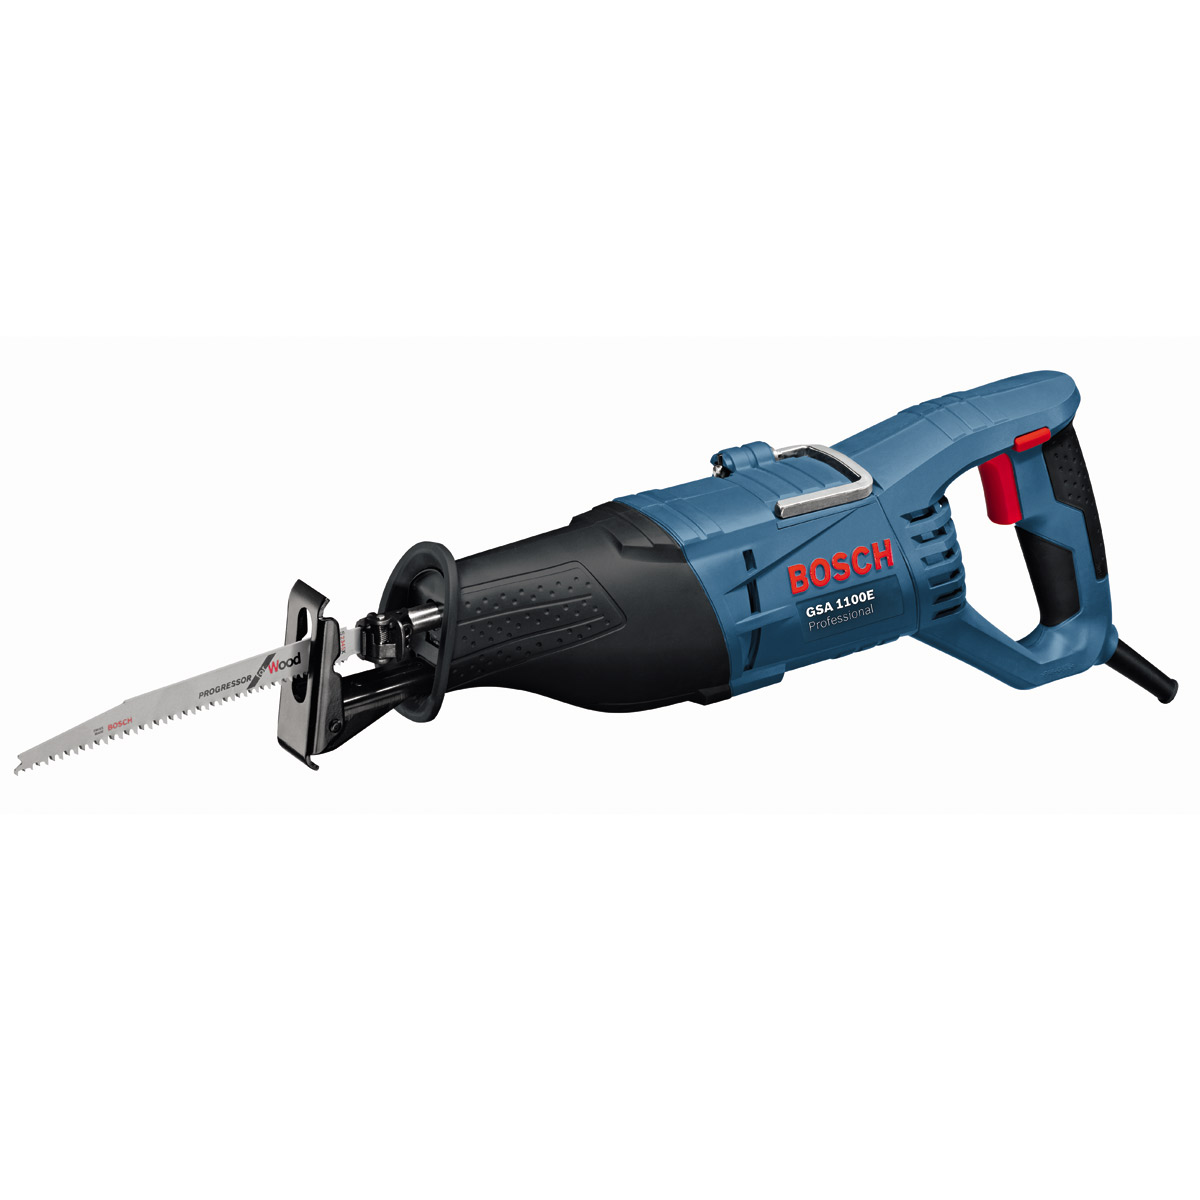 BOSCH 240V PROFESSIONAL RECIPROCATING SAW GSA1100E | The GSA 1100 E Professional Sawzall also features a hanging hook and tool-free SDS saw blade changes. | toolforce.ie